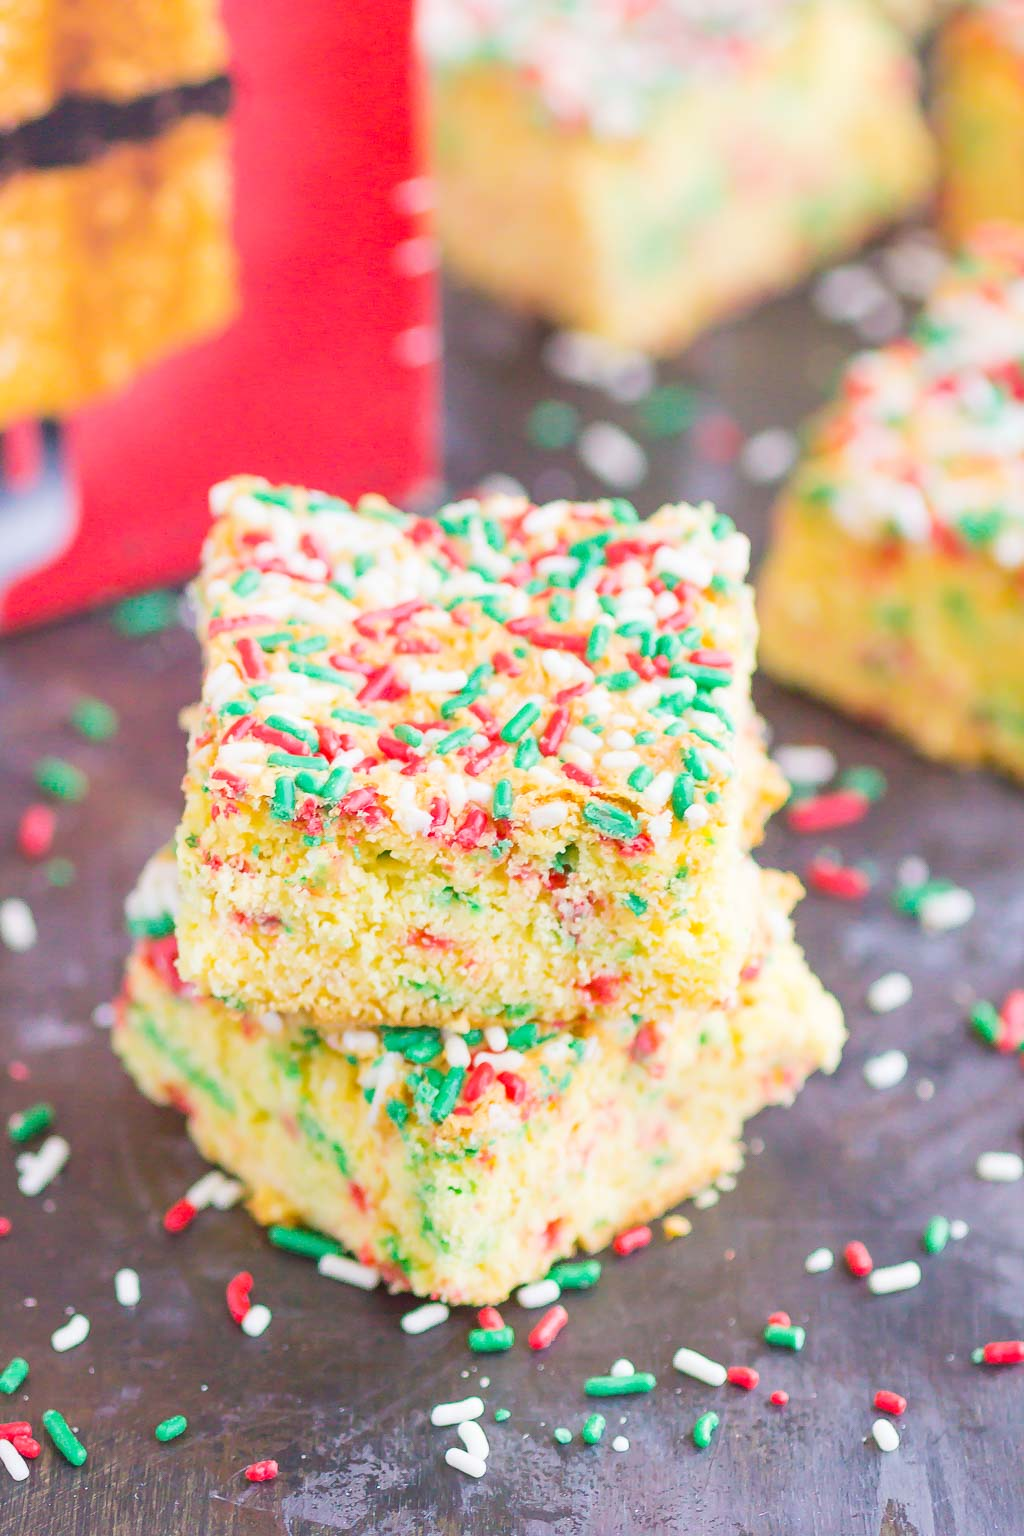 Holiday Cake Mix Bars make a simple, one bowl treat that's ready in no time. With just a few ingredients, these bars bake up soft, chewy, and all-around delicious! #cake #cakebars #cakerecipe #cakebarrecipe #easycakerecipe #holidaycake #holidaydessert #christmascake #christmasdessert #dessert